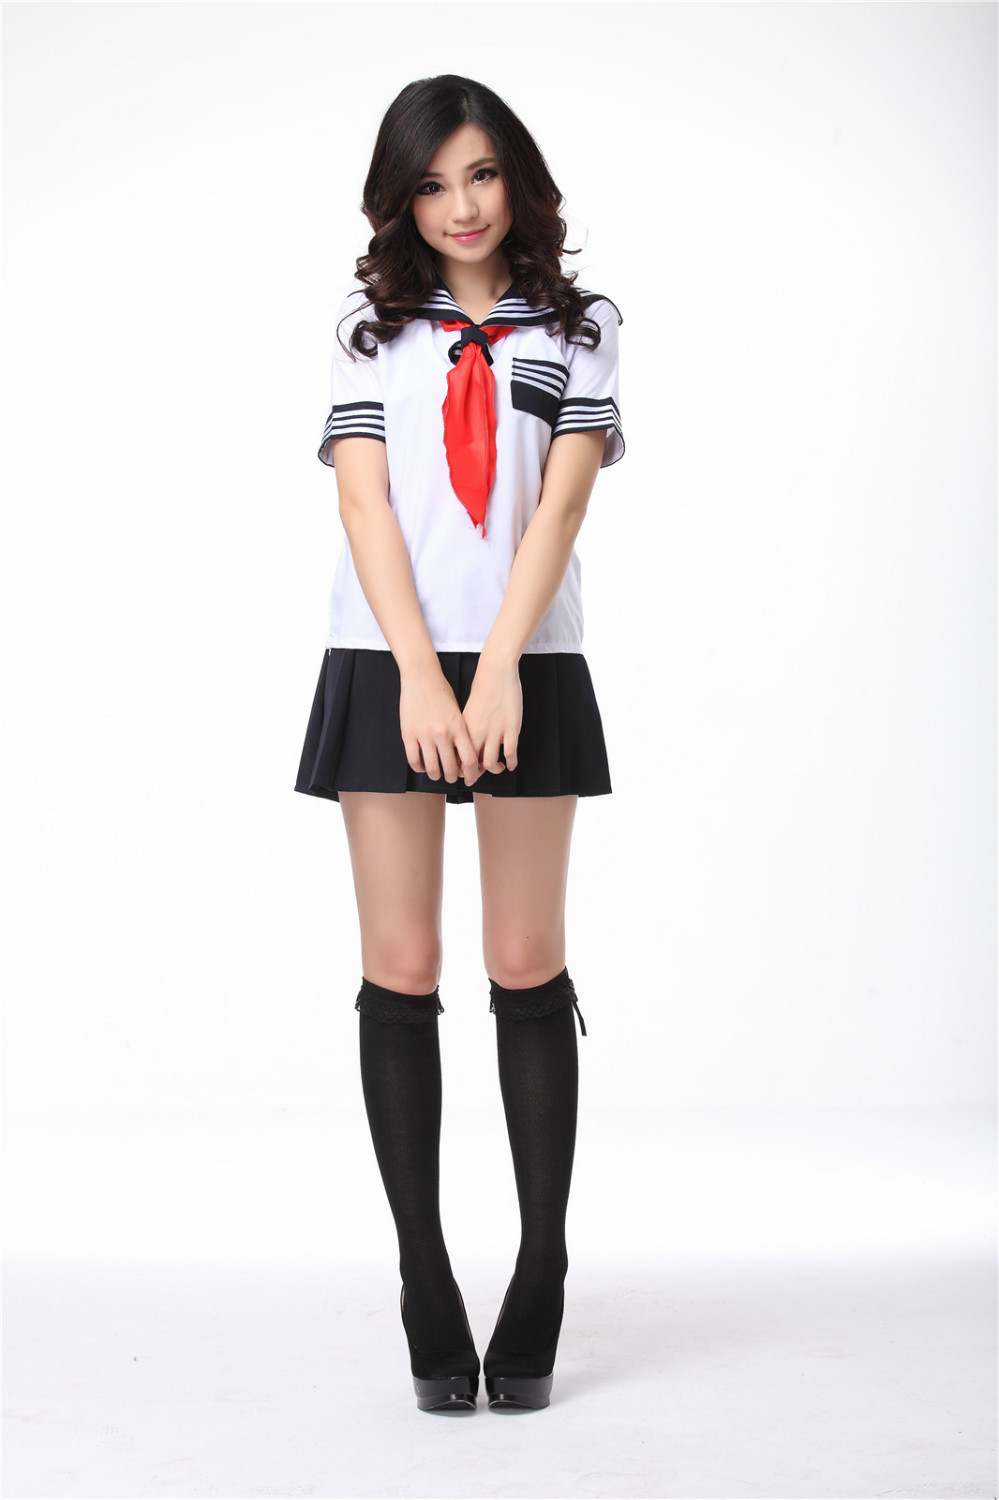 School Girl With Uniform